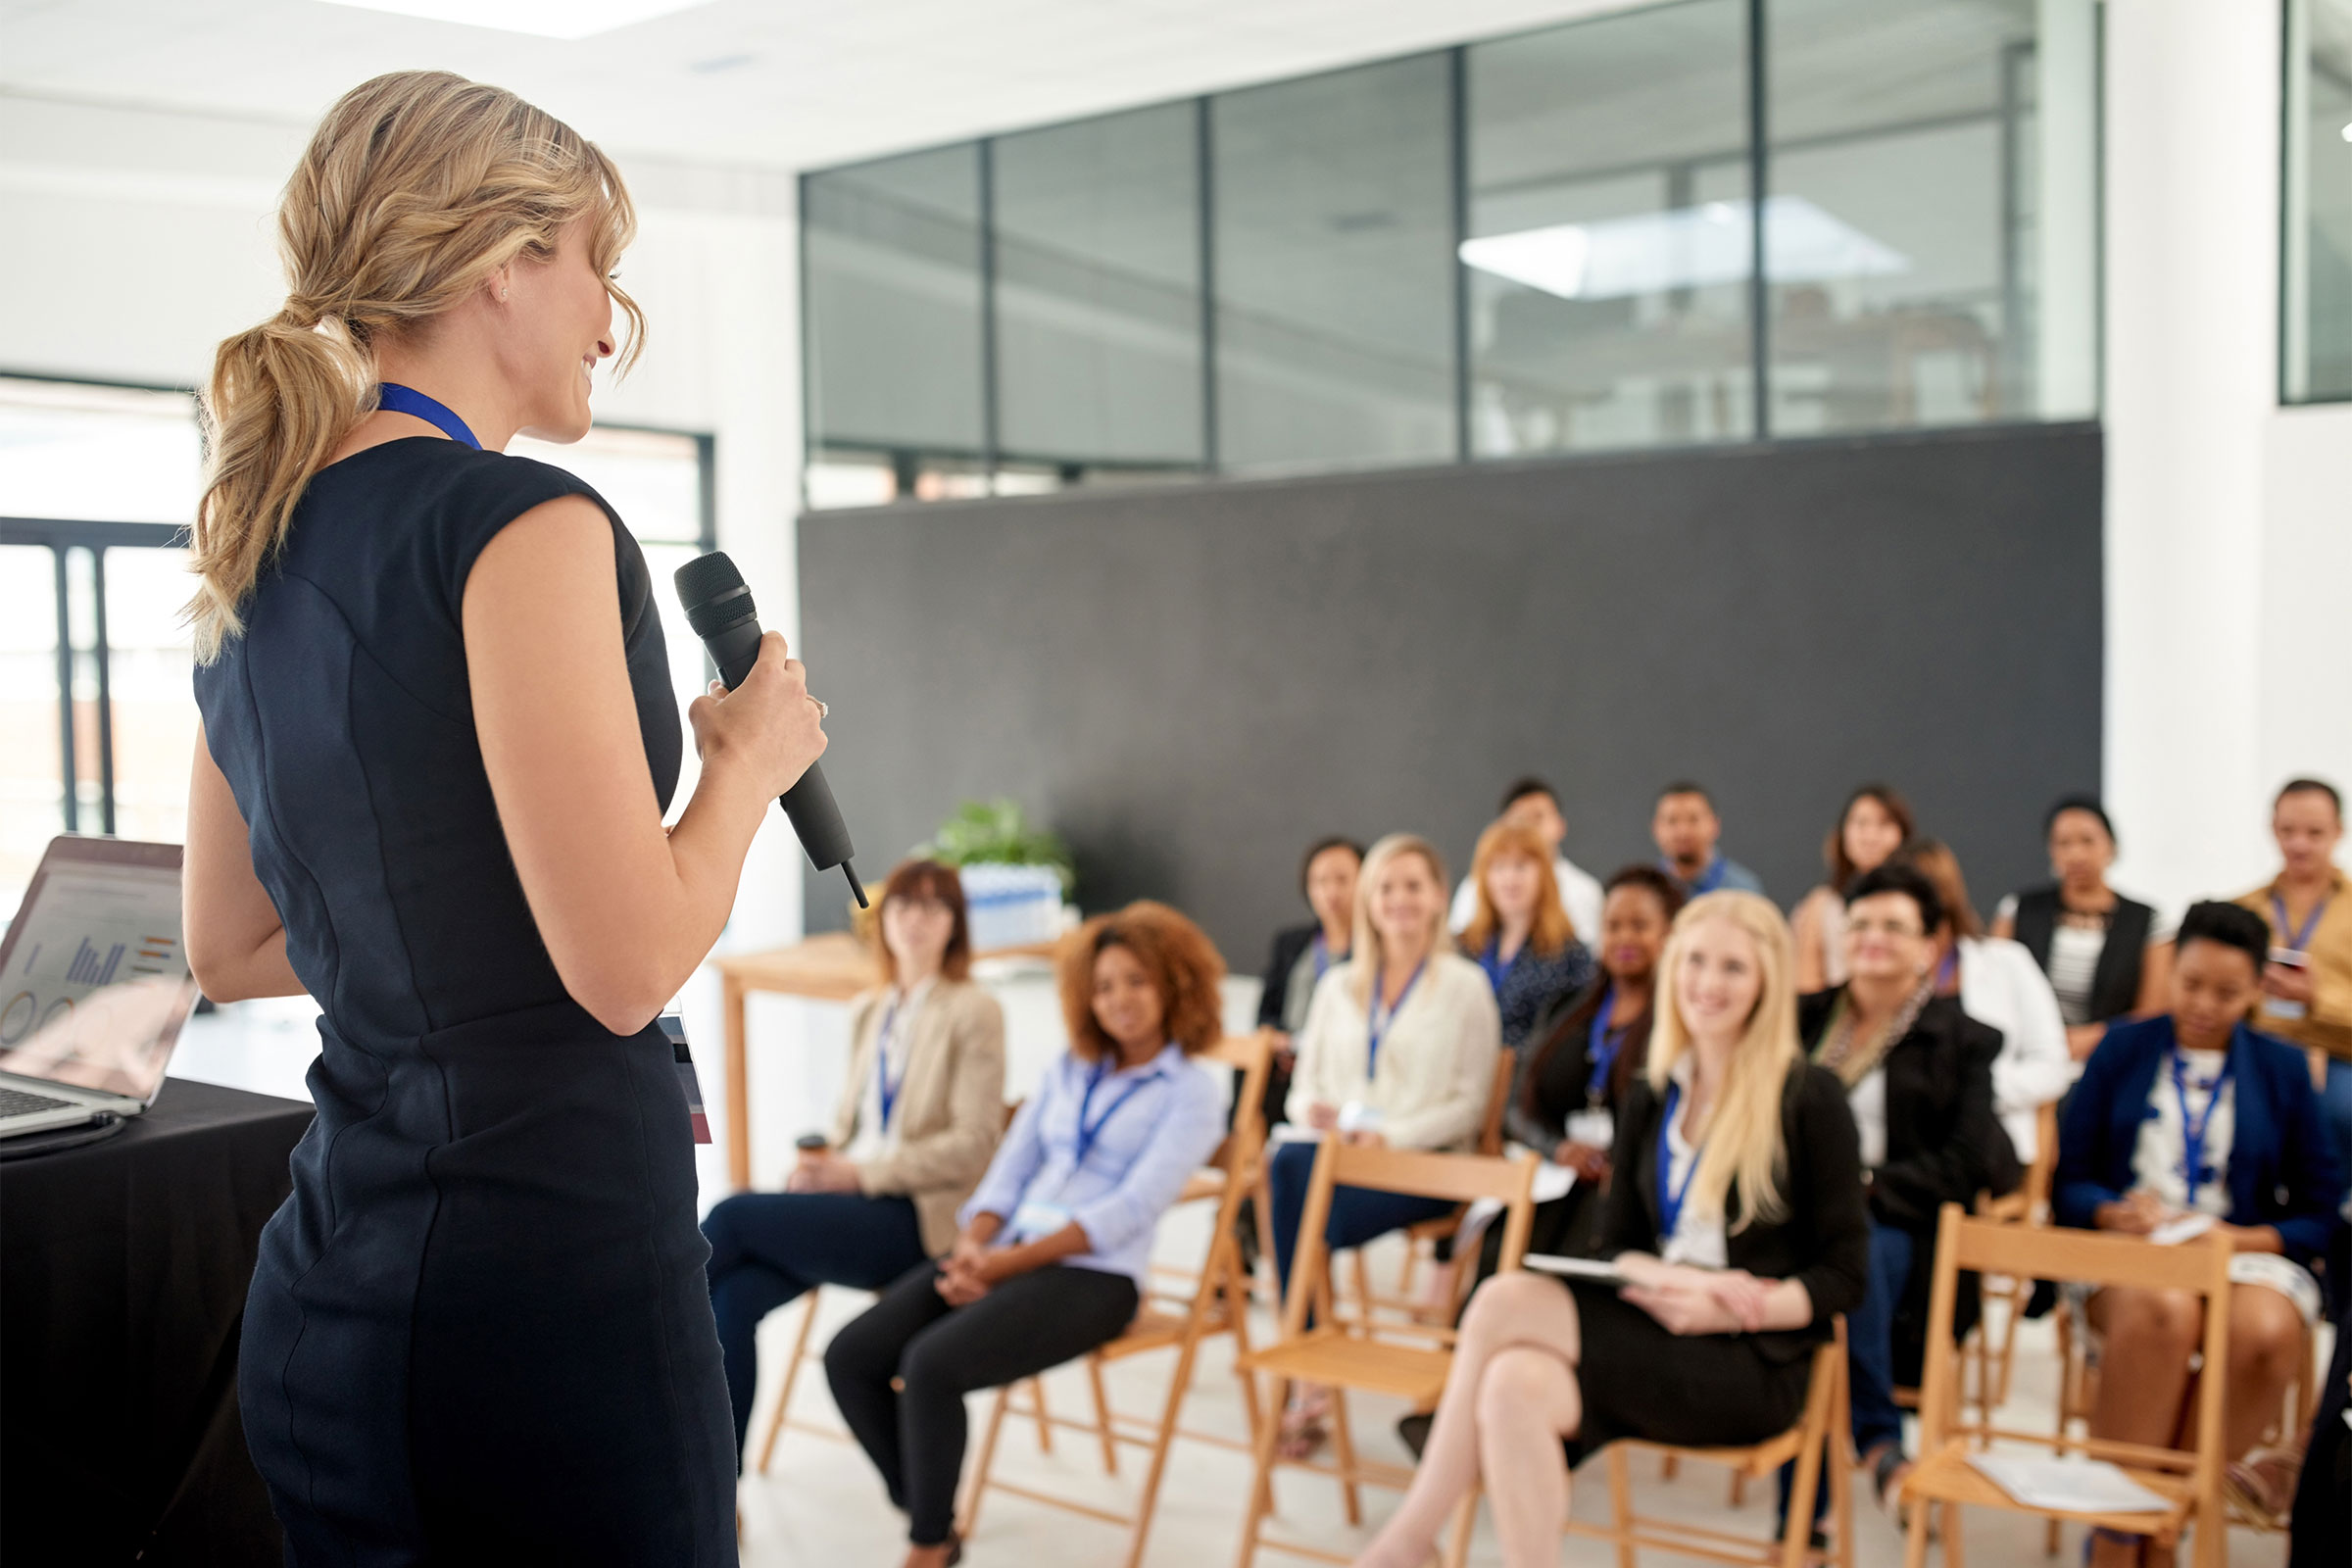 Woman addressing a roomful of people